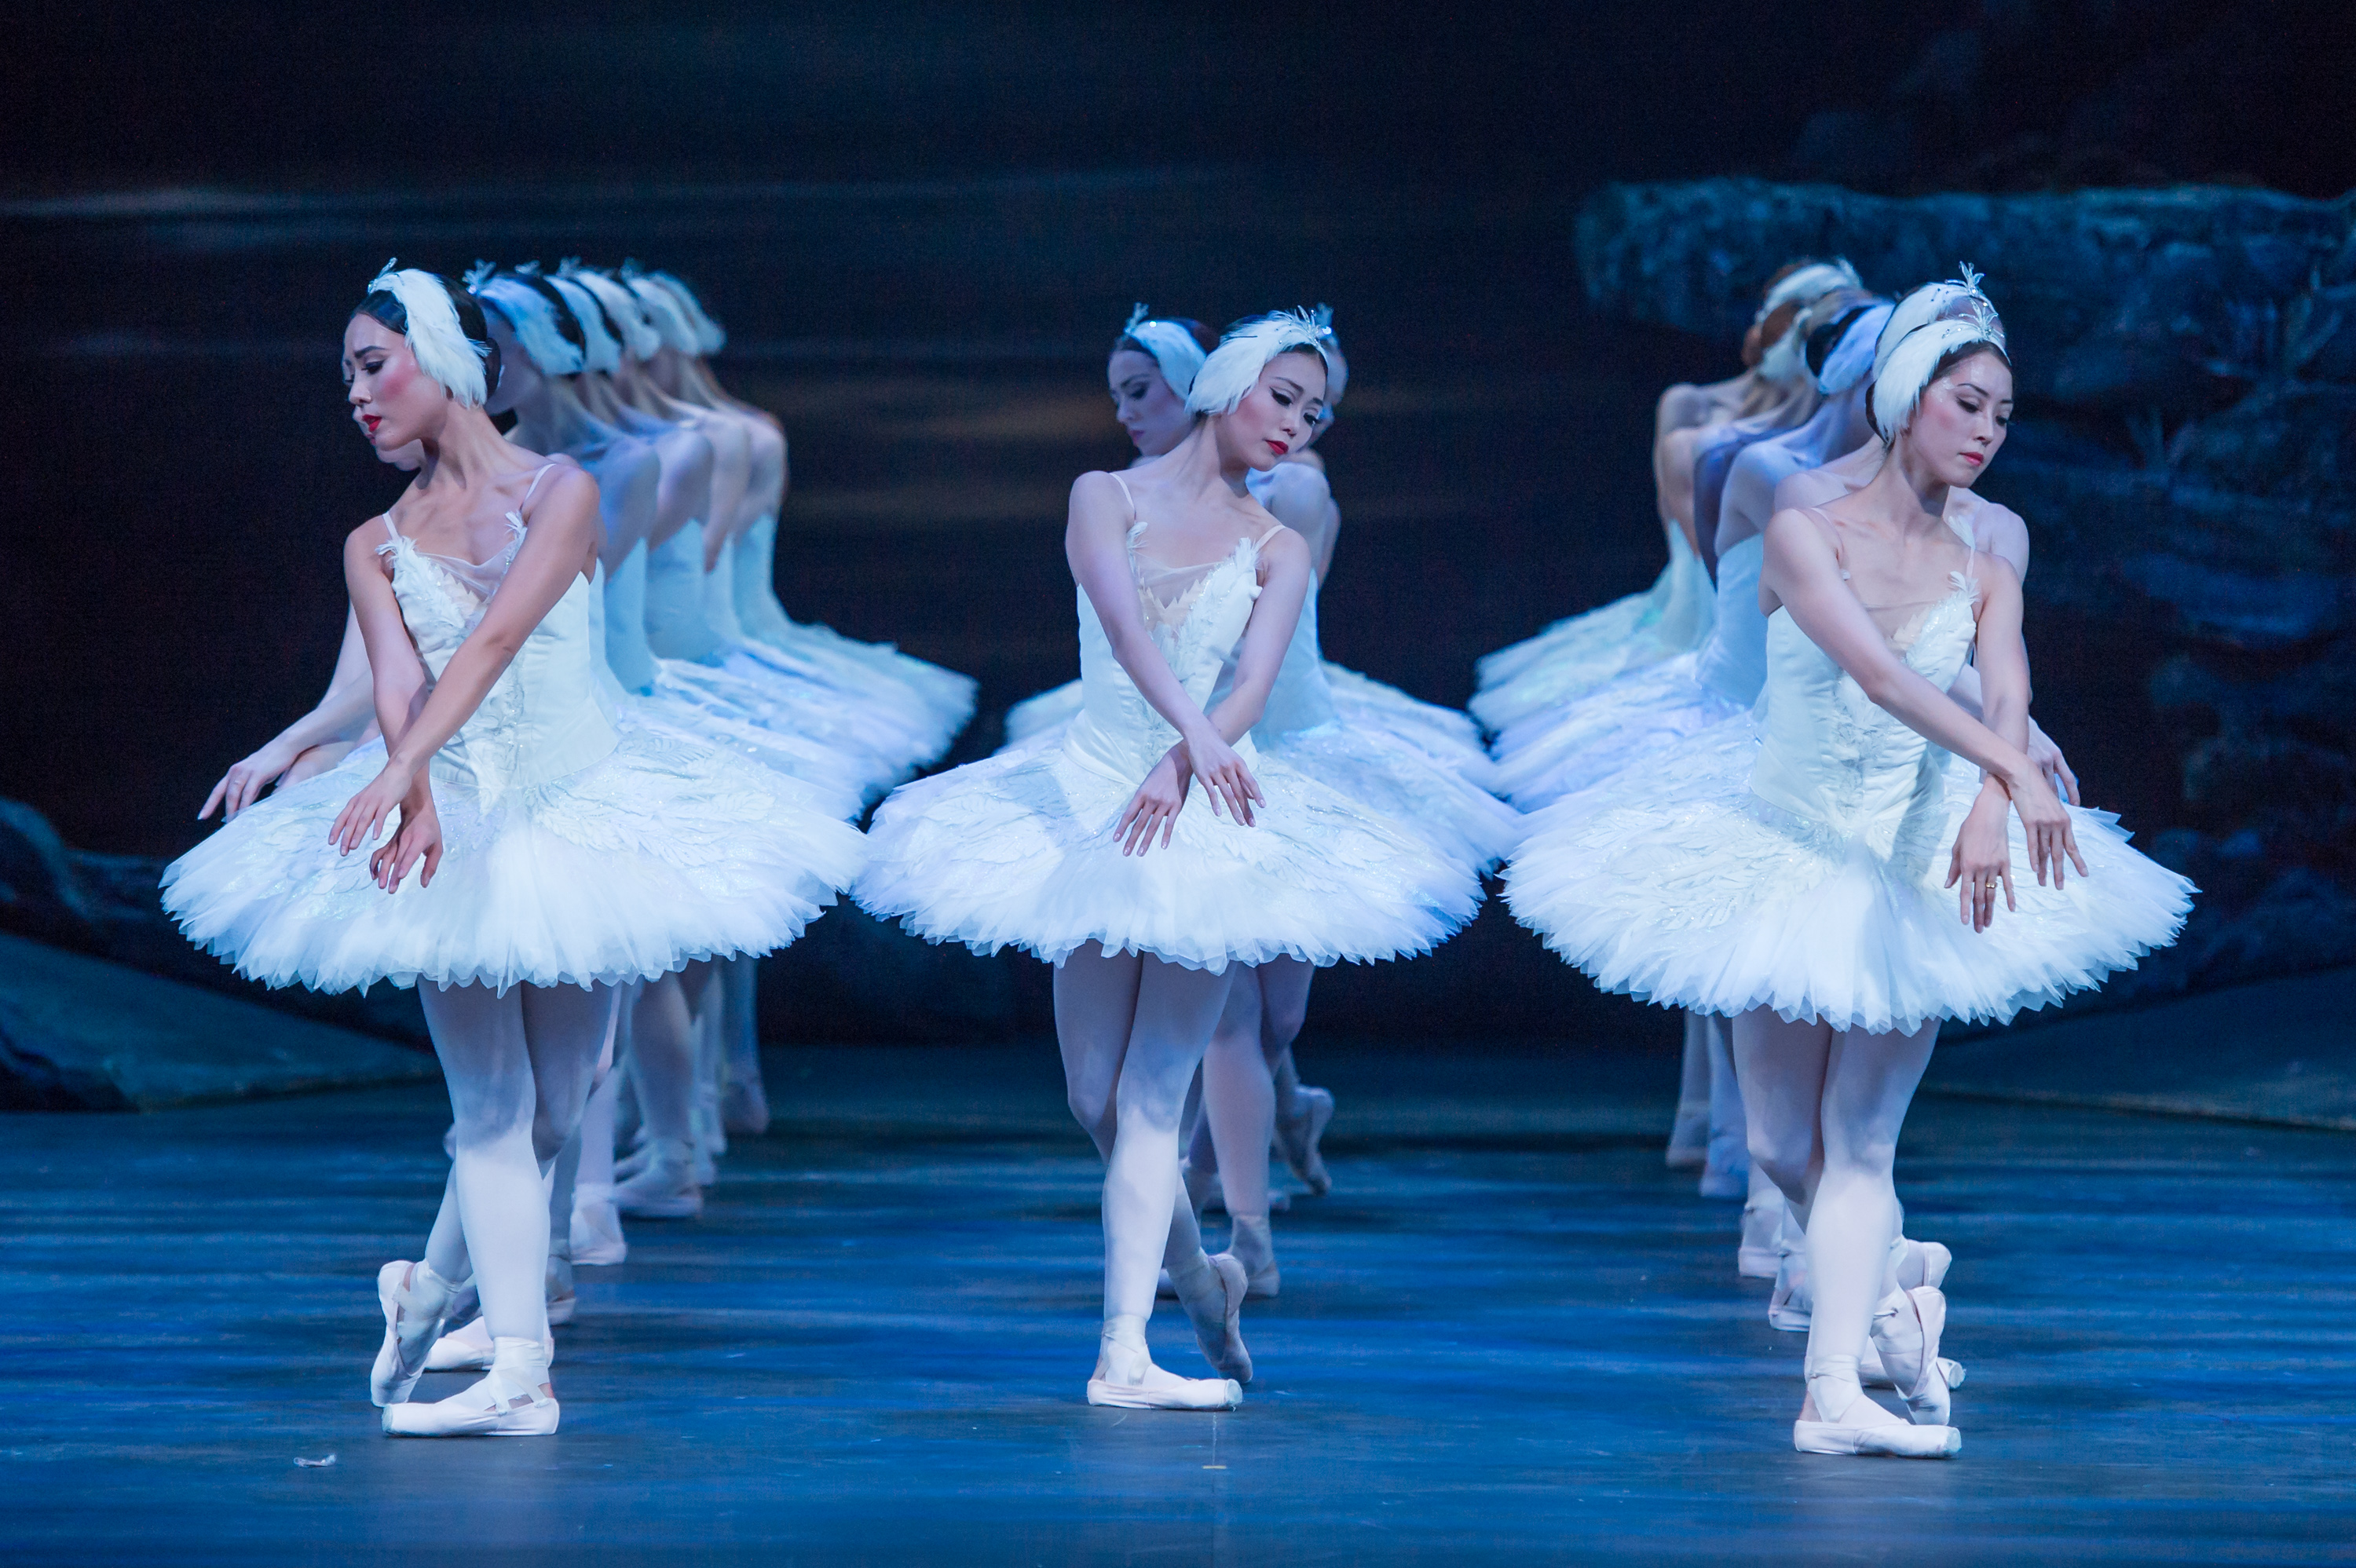 English National Ballet's Swan Lake. The Swans corps de ballet. (Photography by ASH).